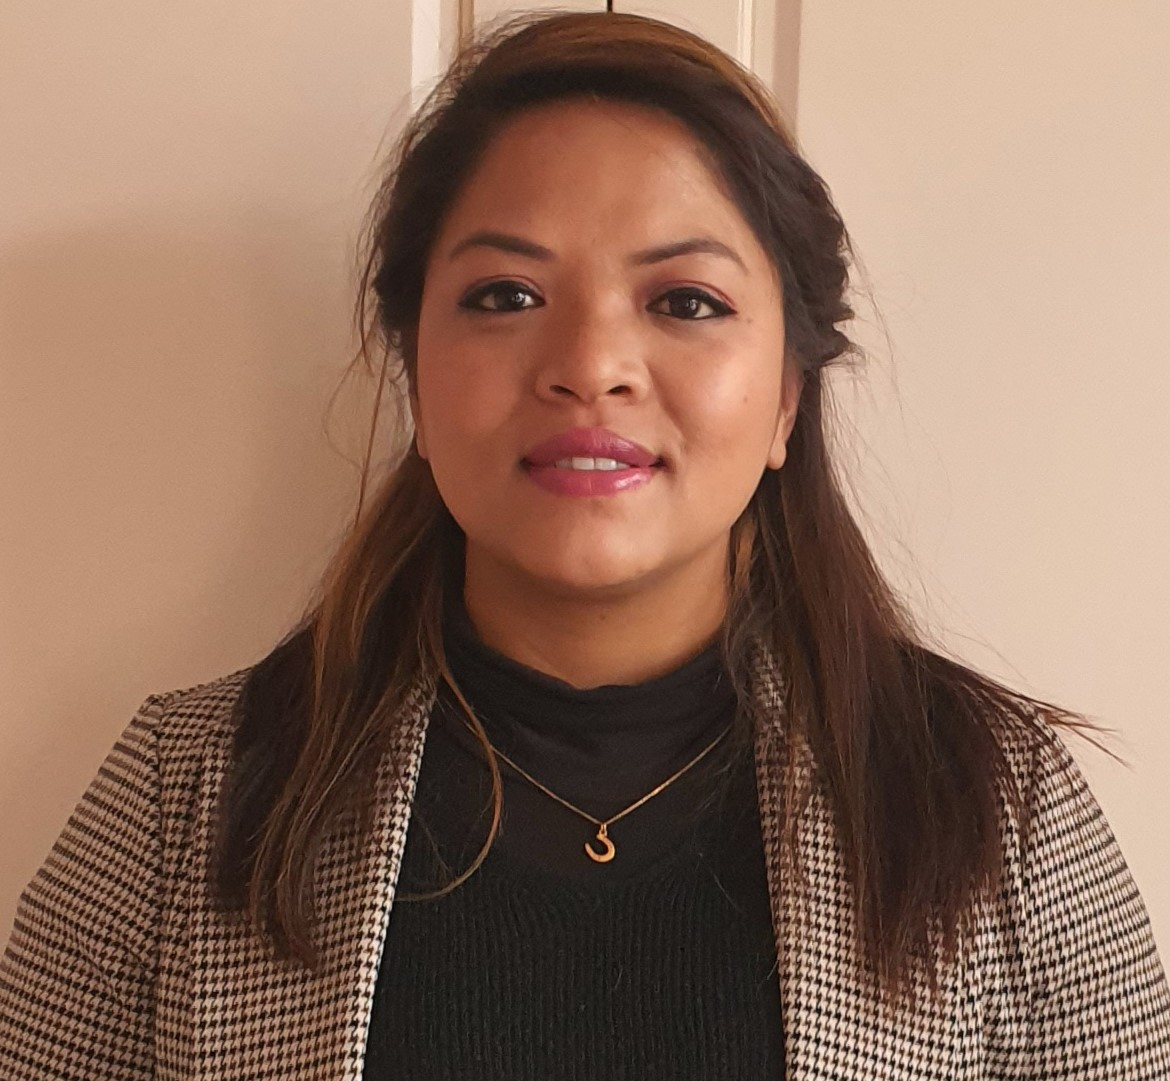 Aarti Maharjan, Founder of AM Collection